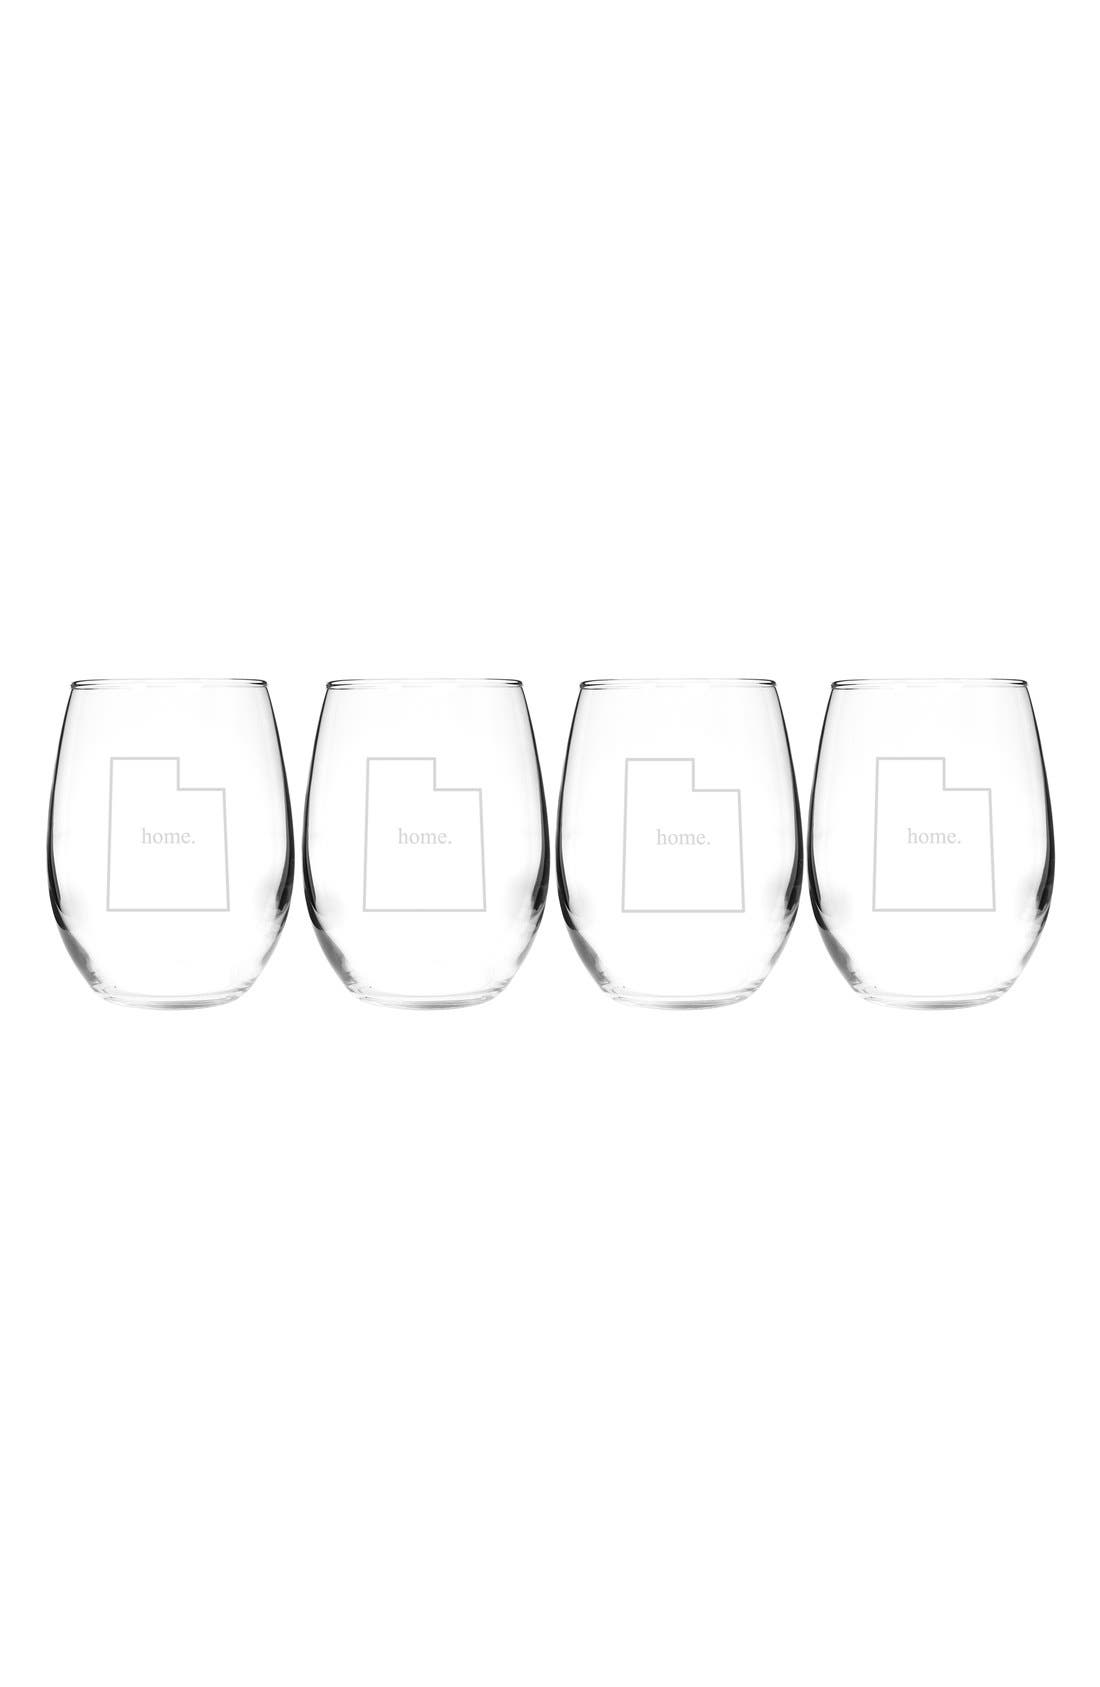 Alternate Image 1 Selected - Cathy's Concepts Home State Set of 4 Stemless Wine Glasses